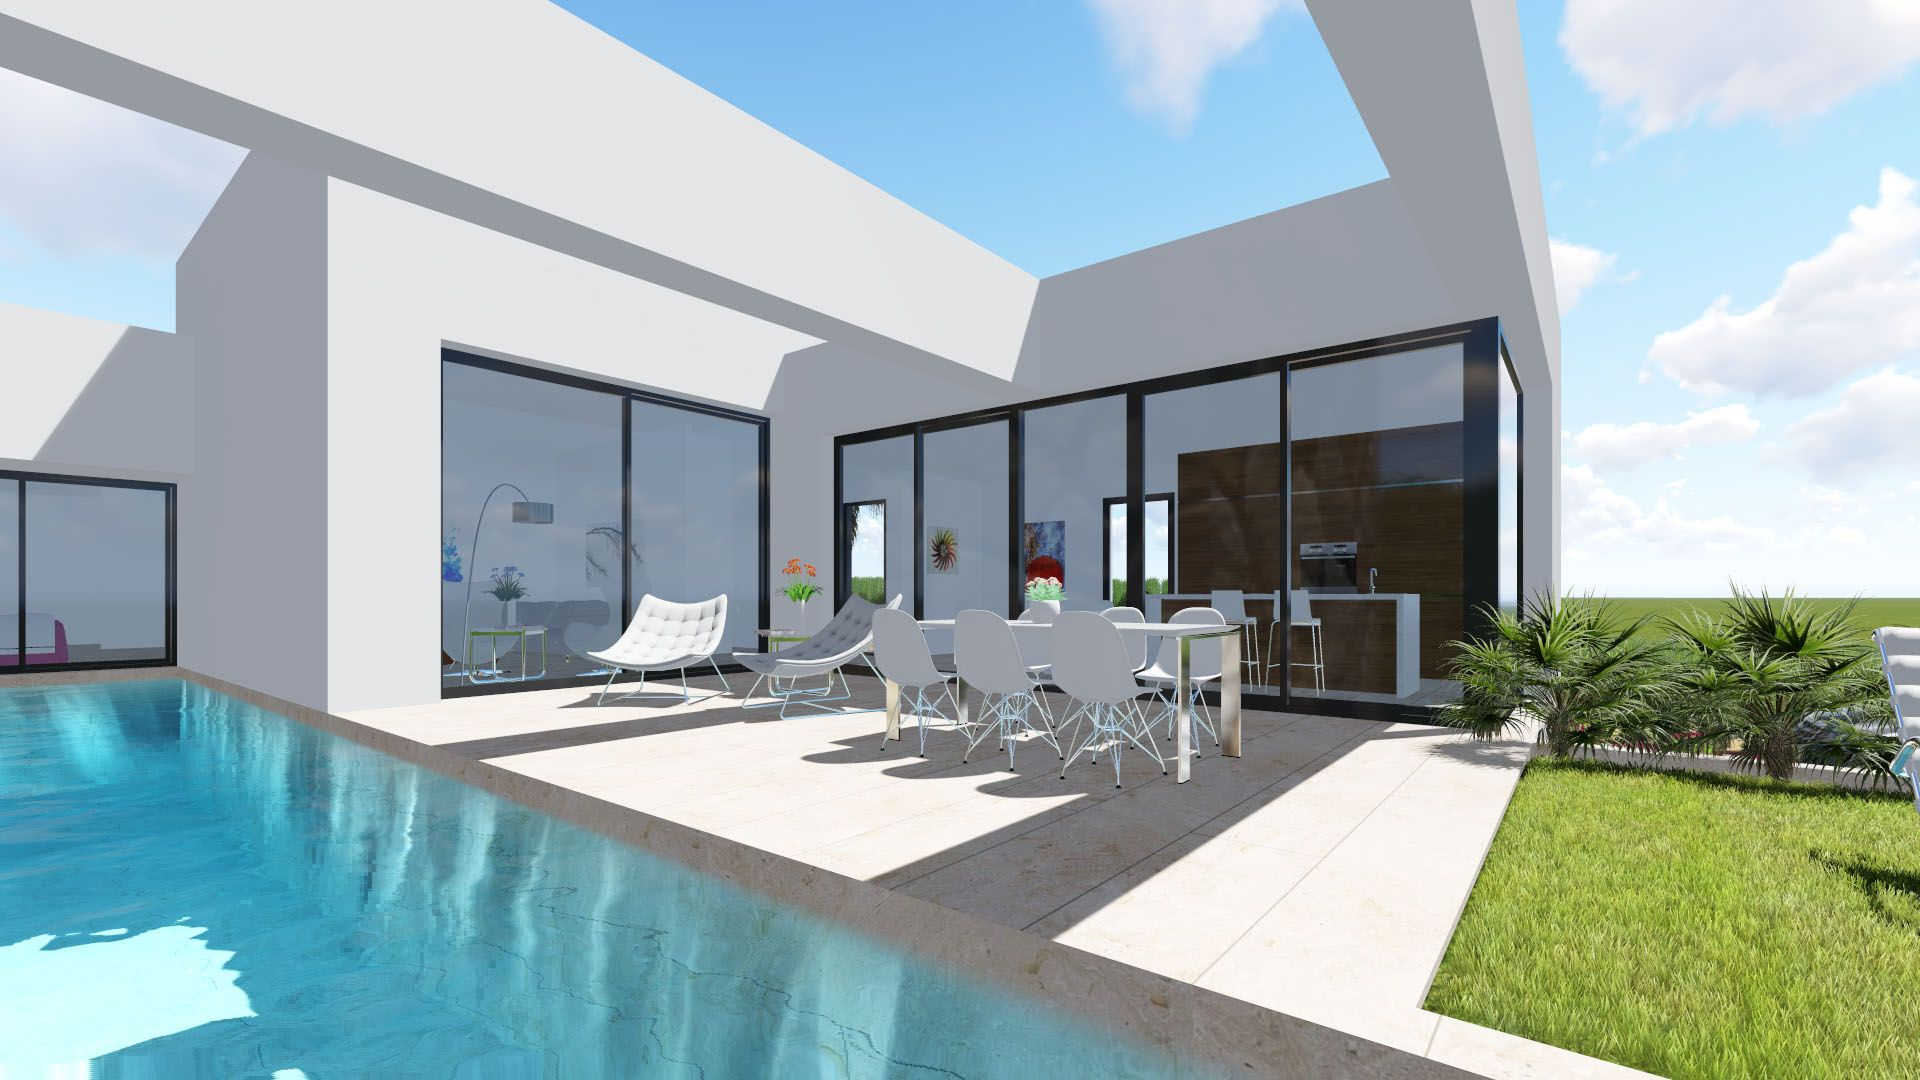 New 3 bedroom detached villa with private pool and garden in Benijófar 5